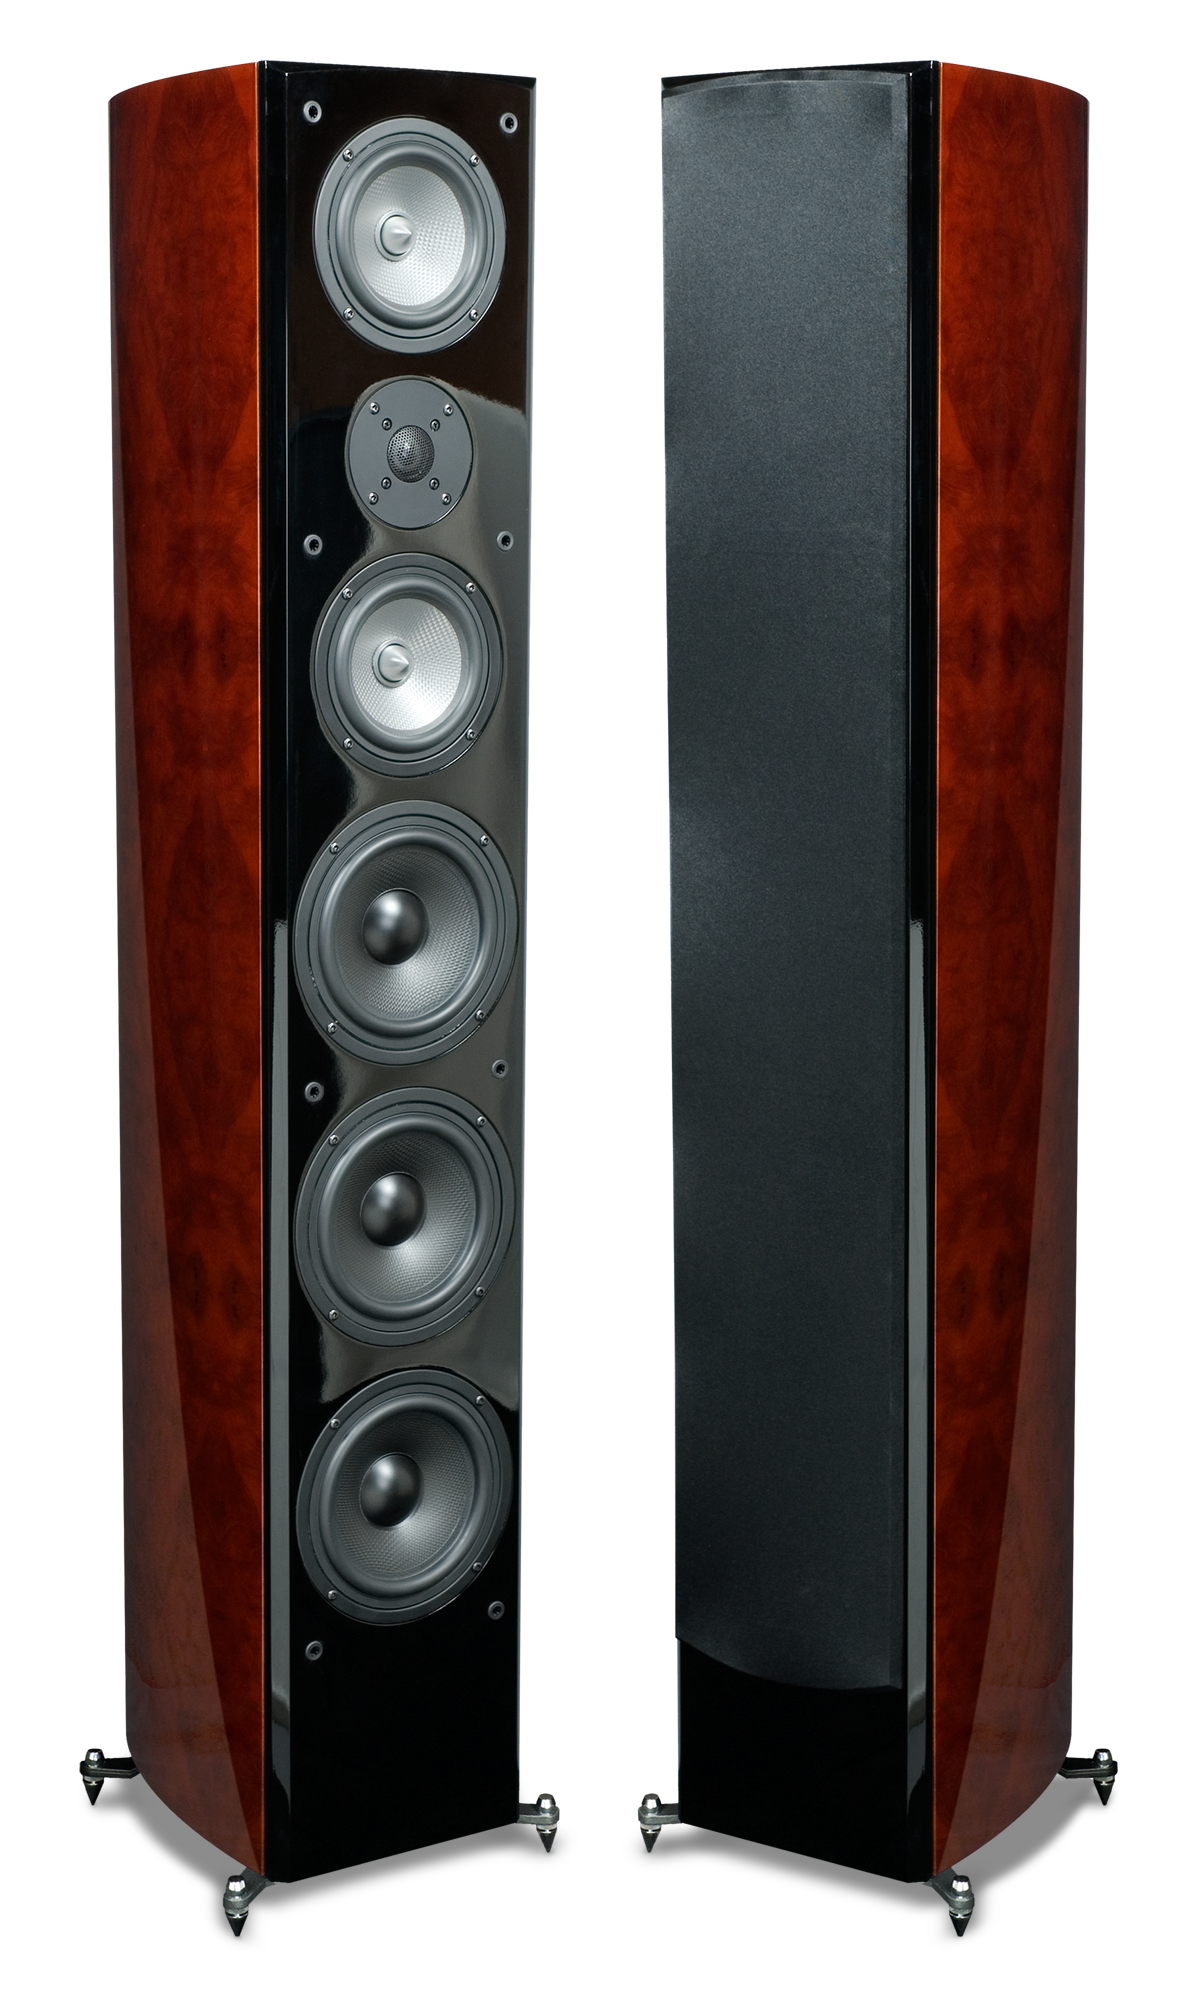 Rbh Sound Tower Speakers